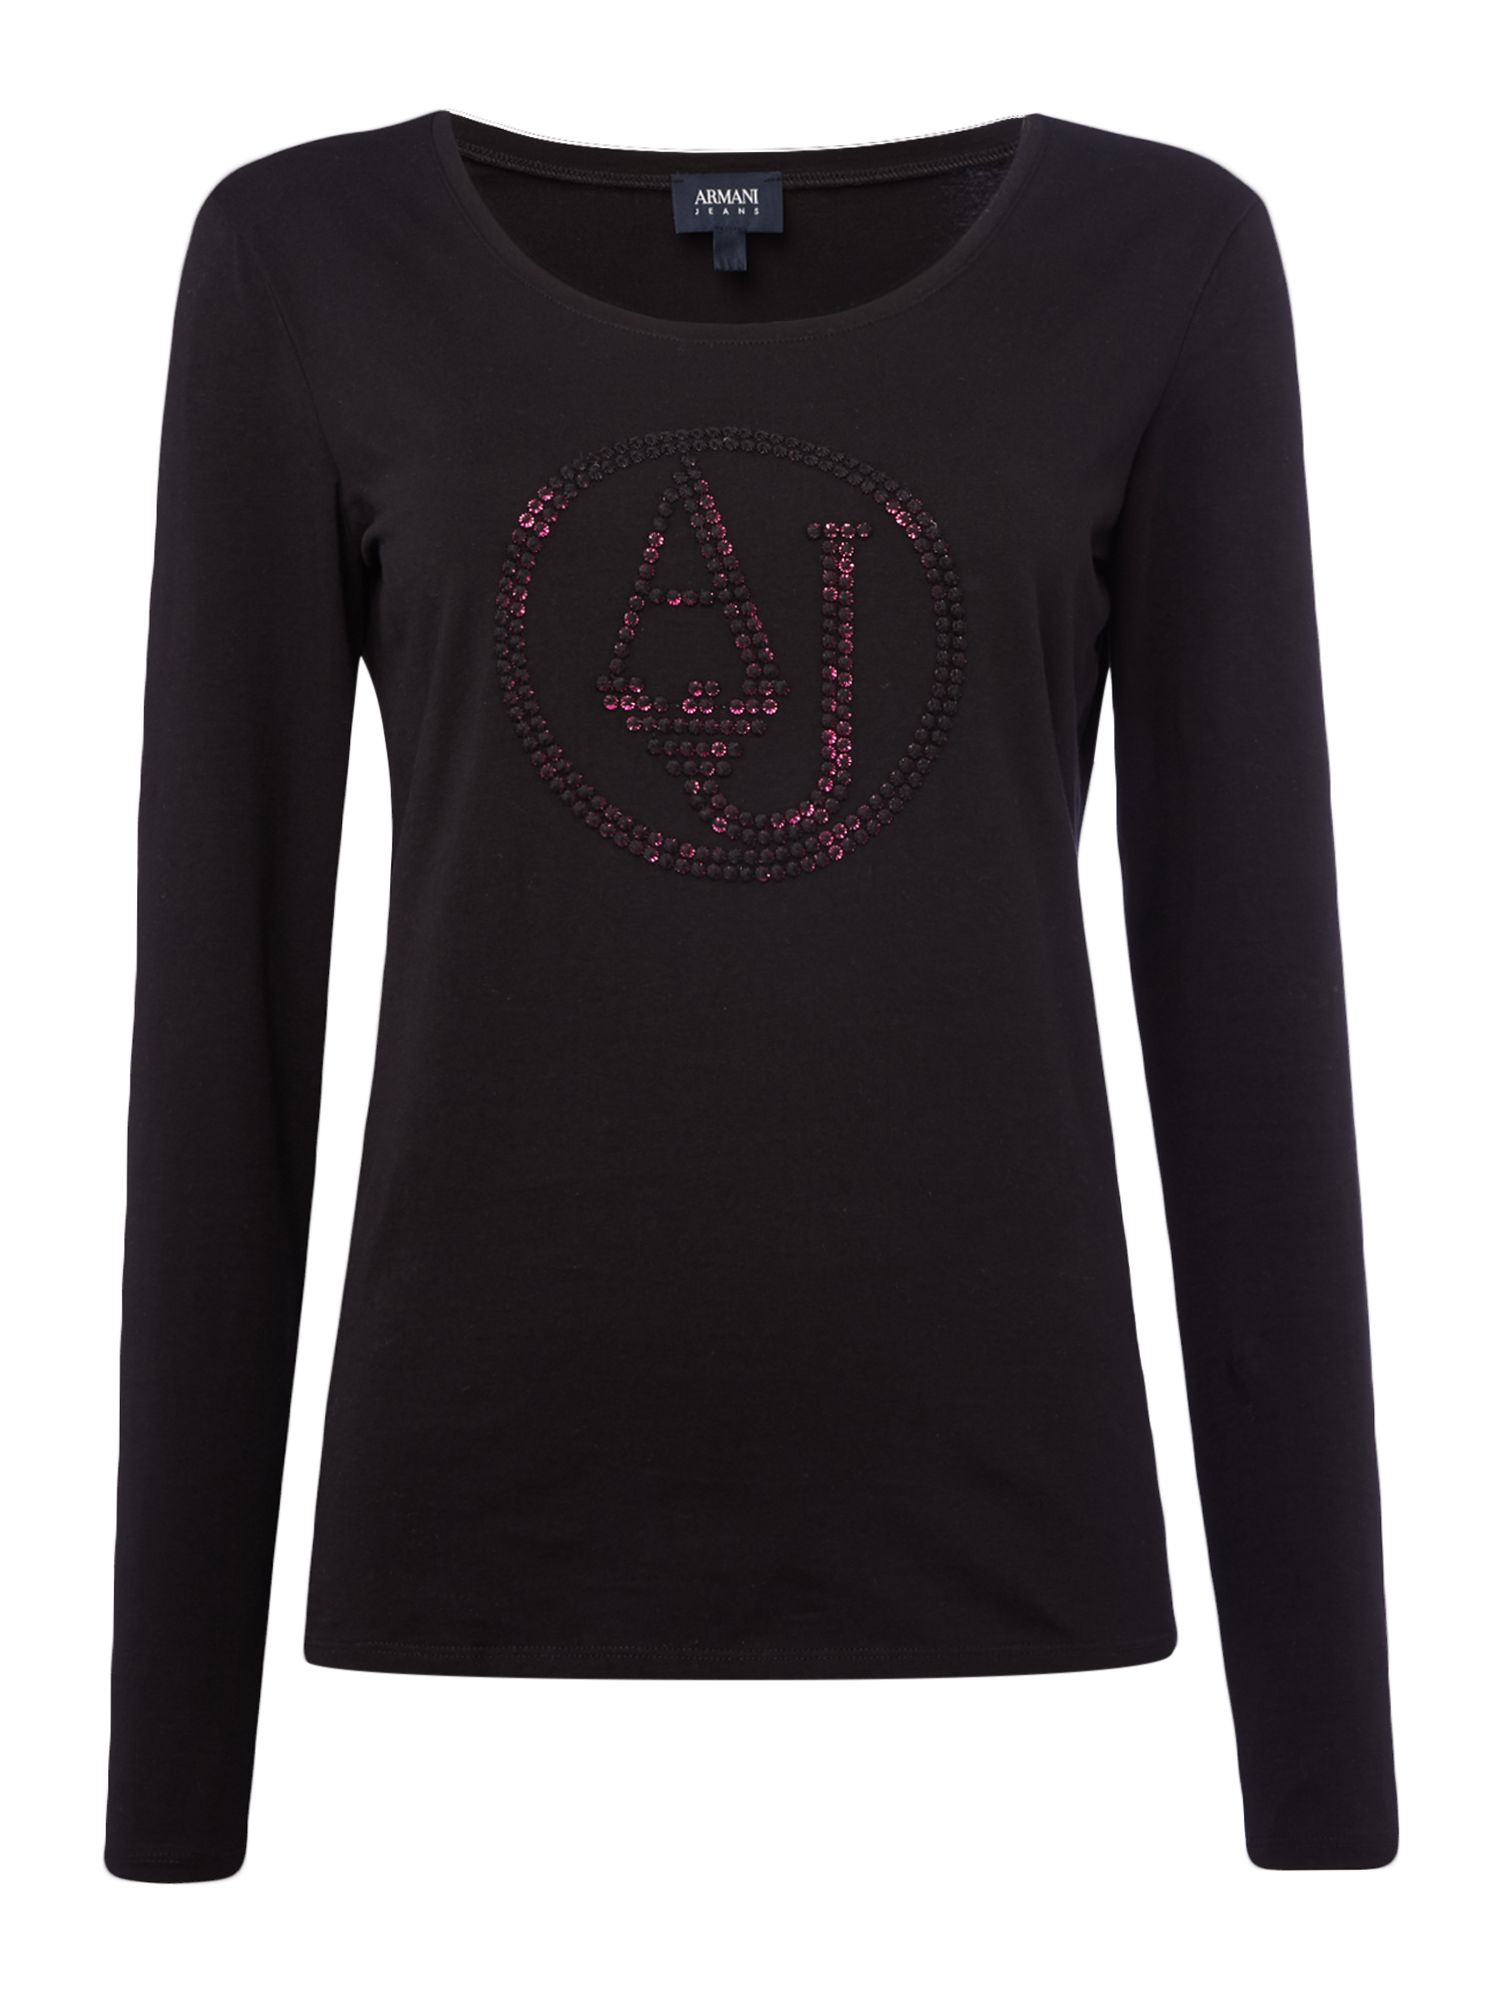 Armani Jeans Crew neck logo top in nero, Black